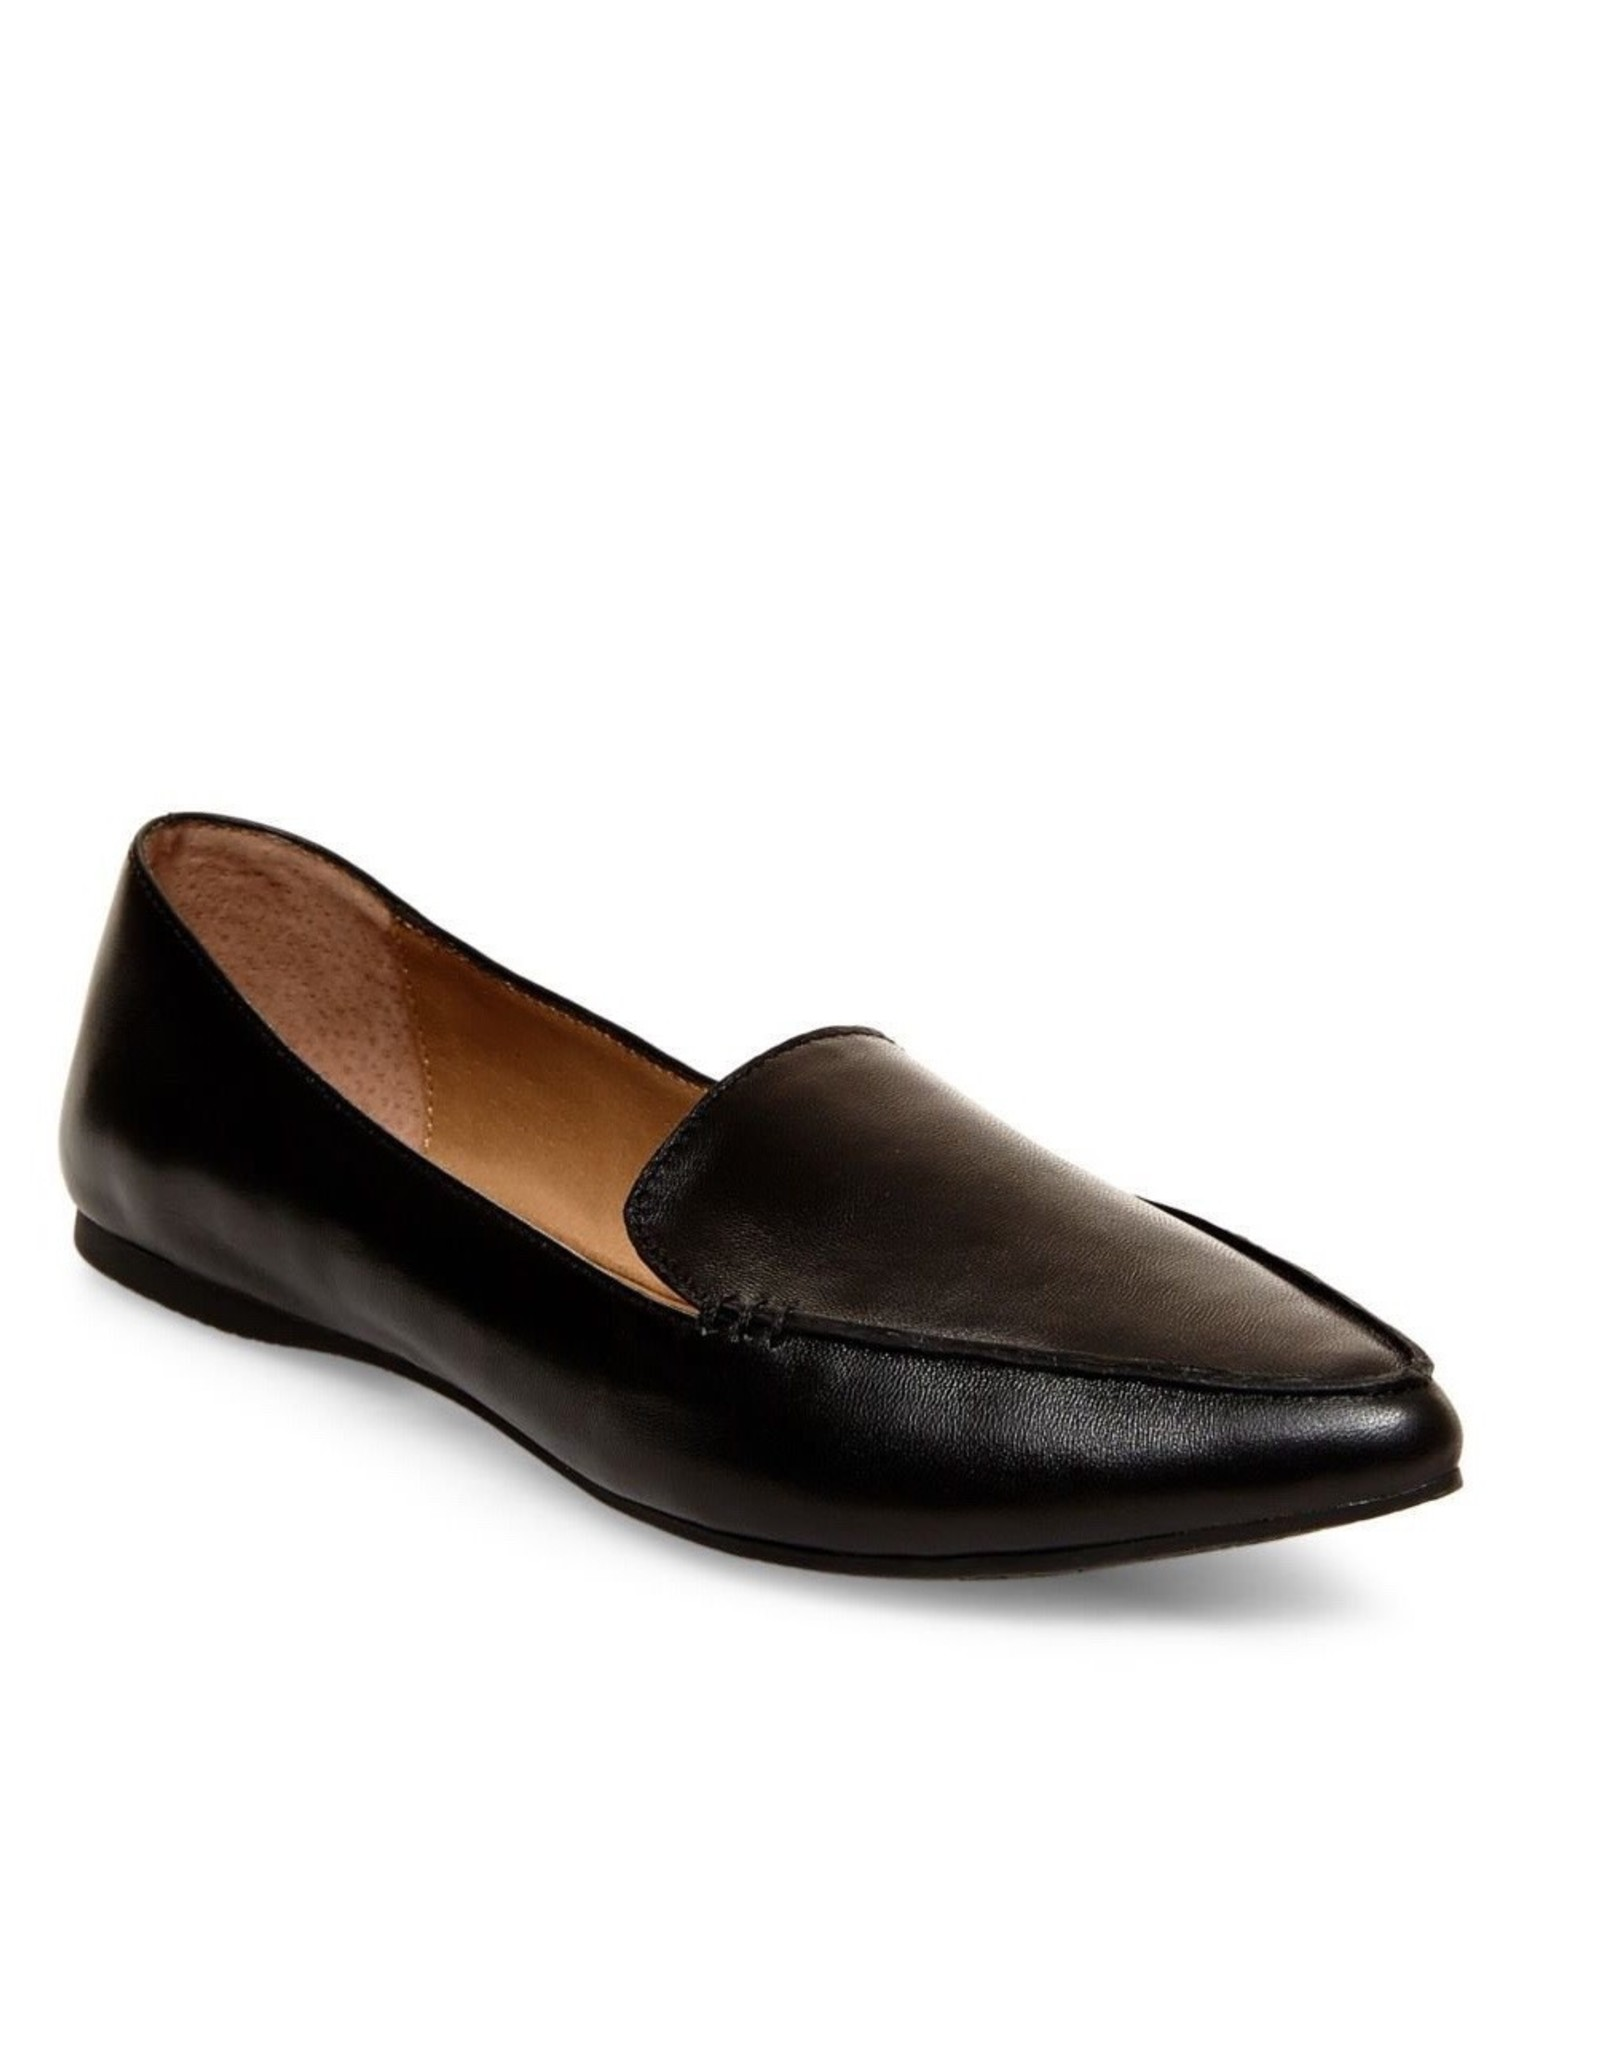 STEVE MADDEN The FEATHER Leather Loafer